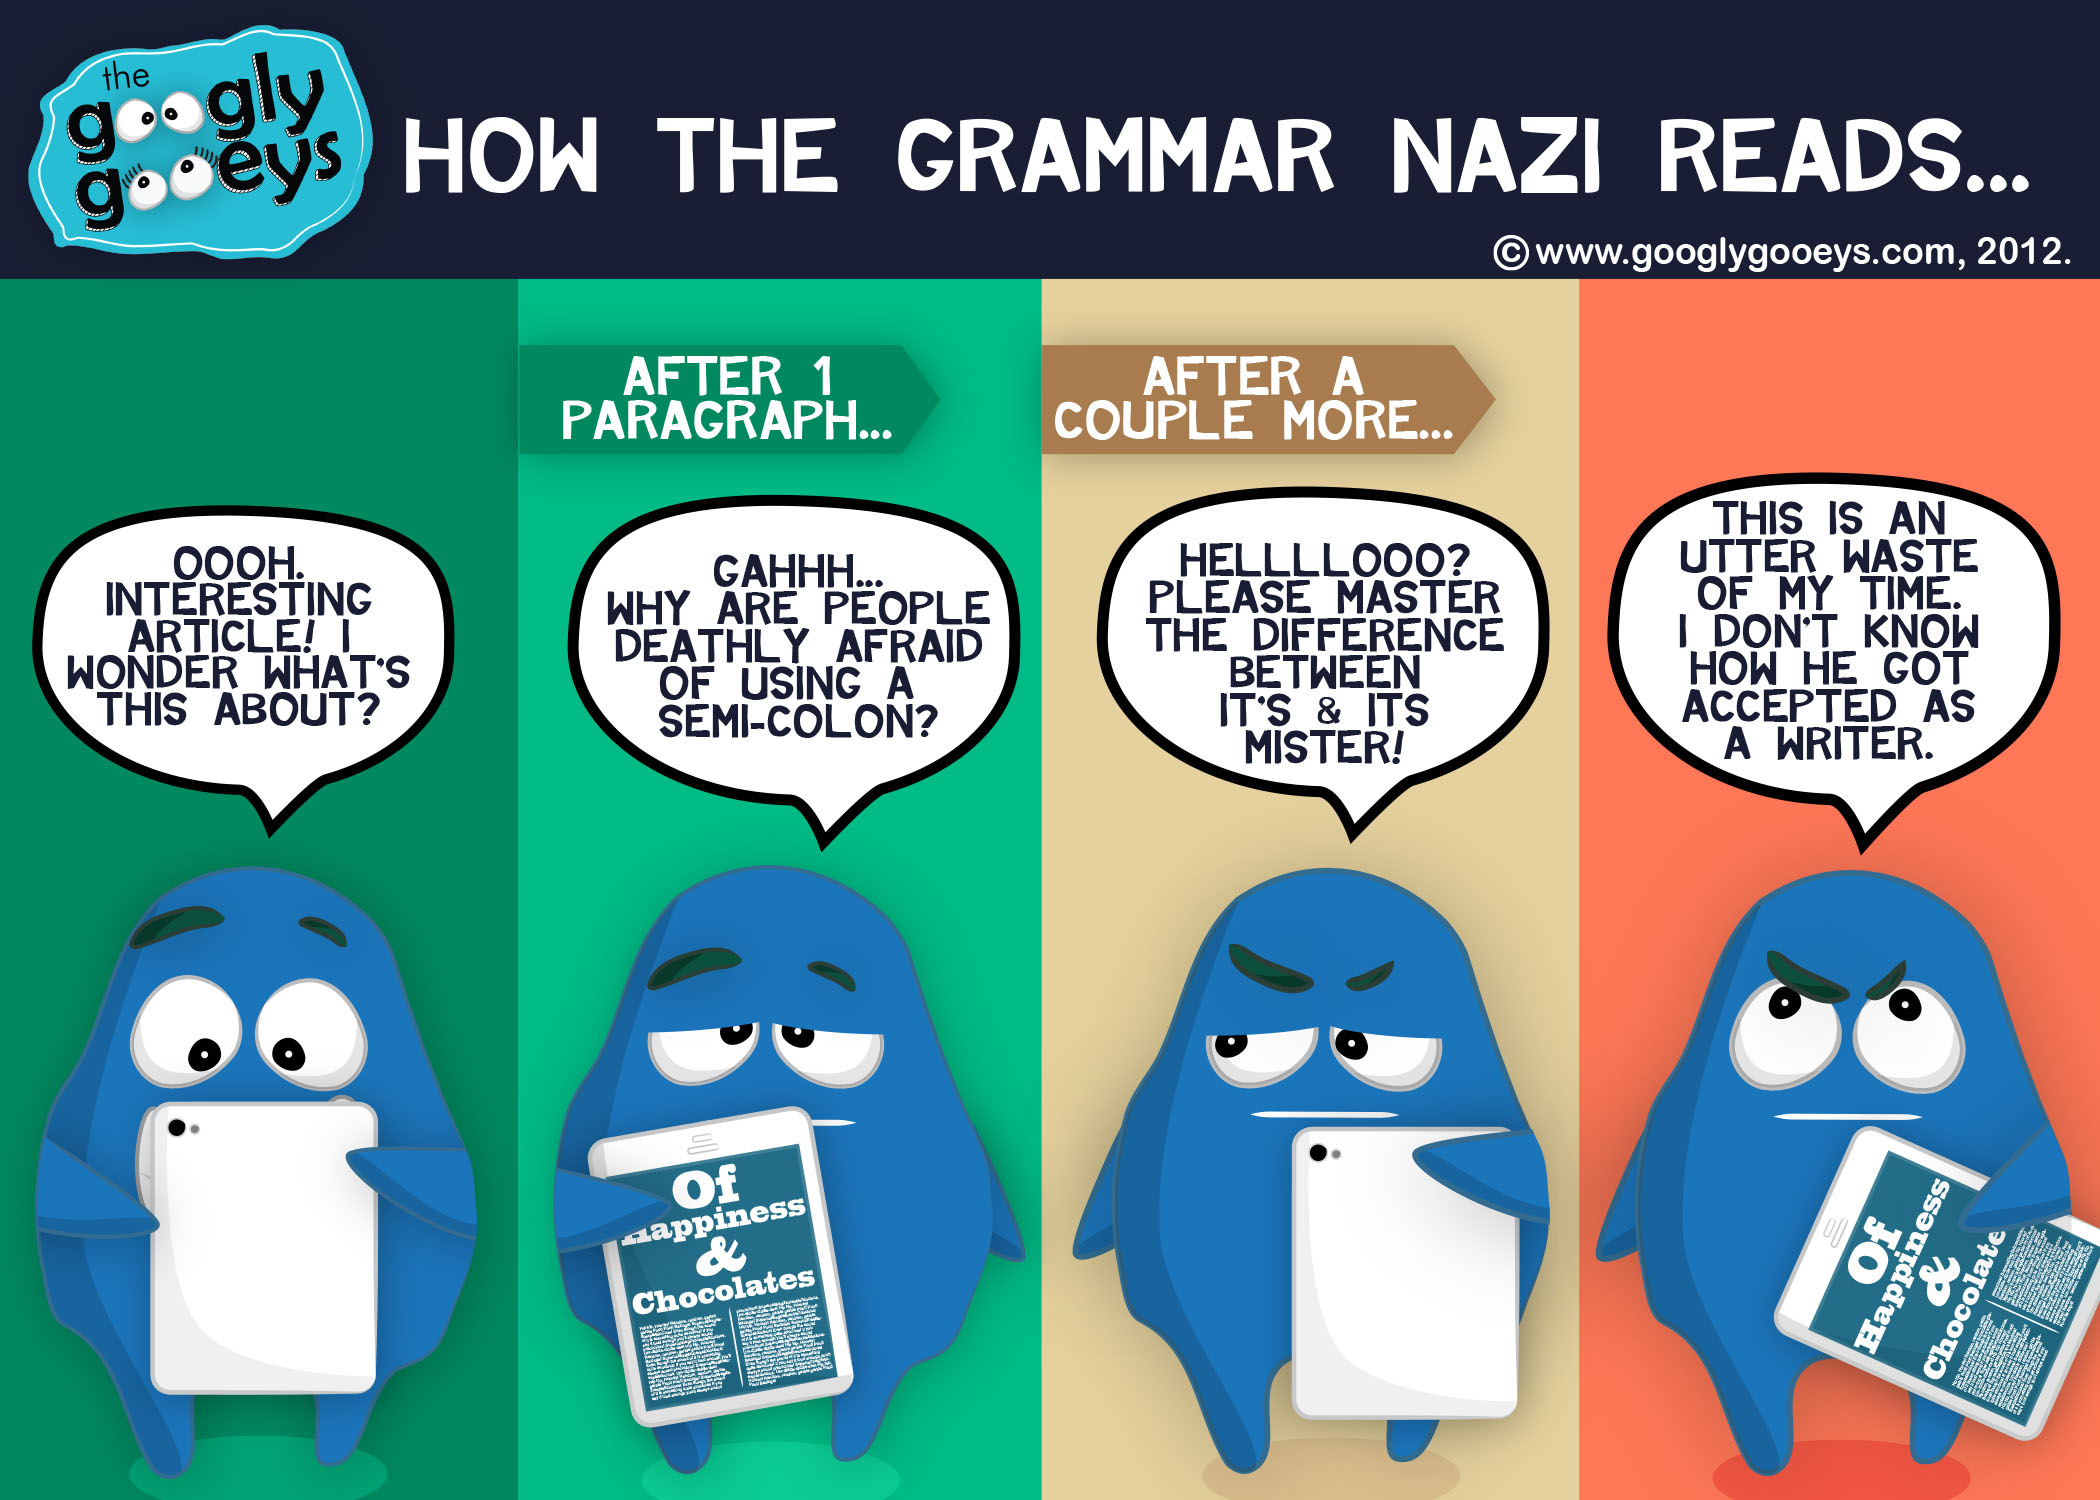 The Grammar Nazi: How He Reads